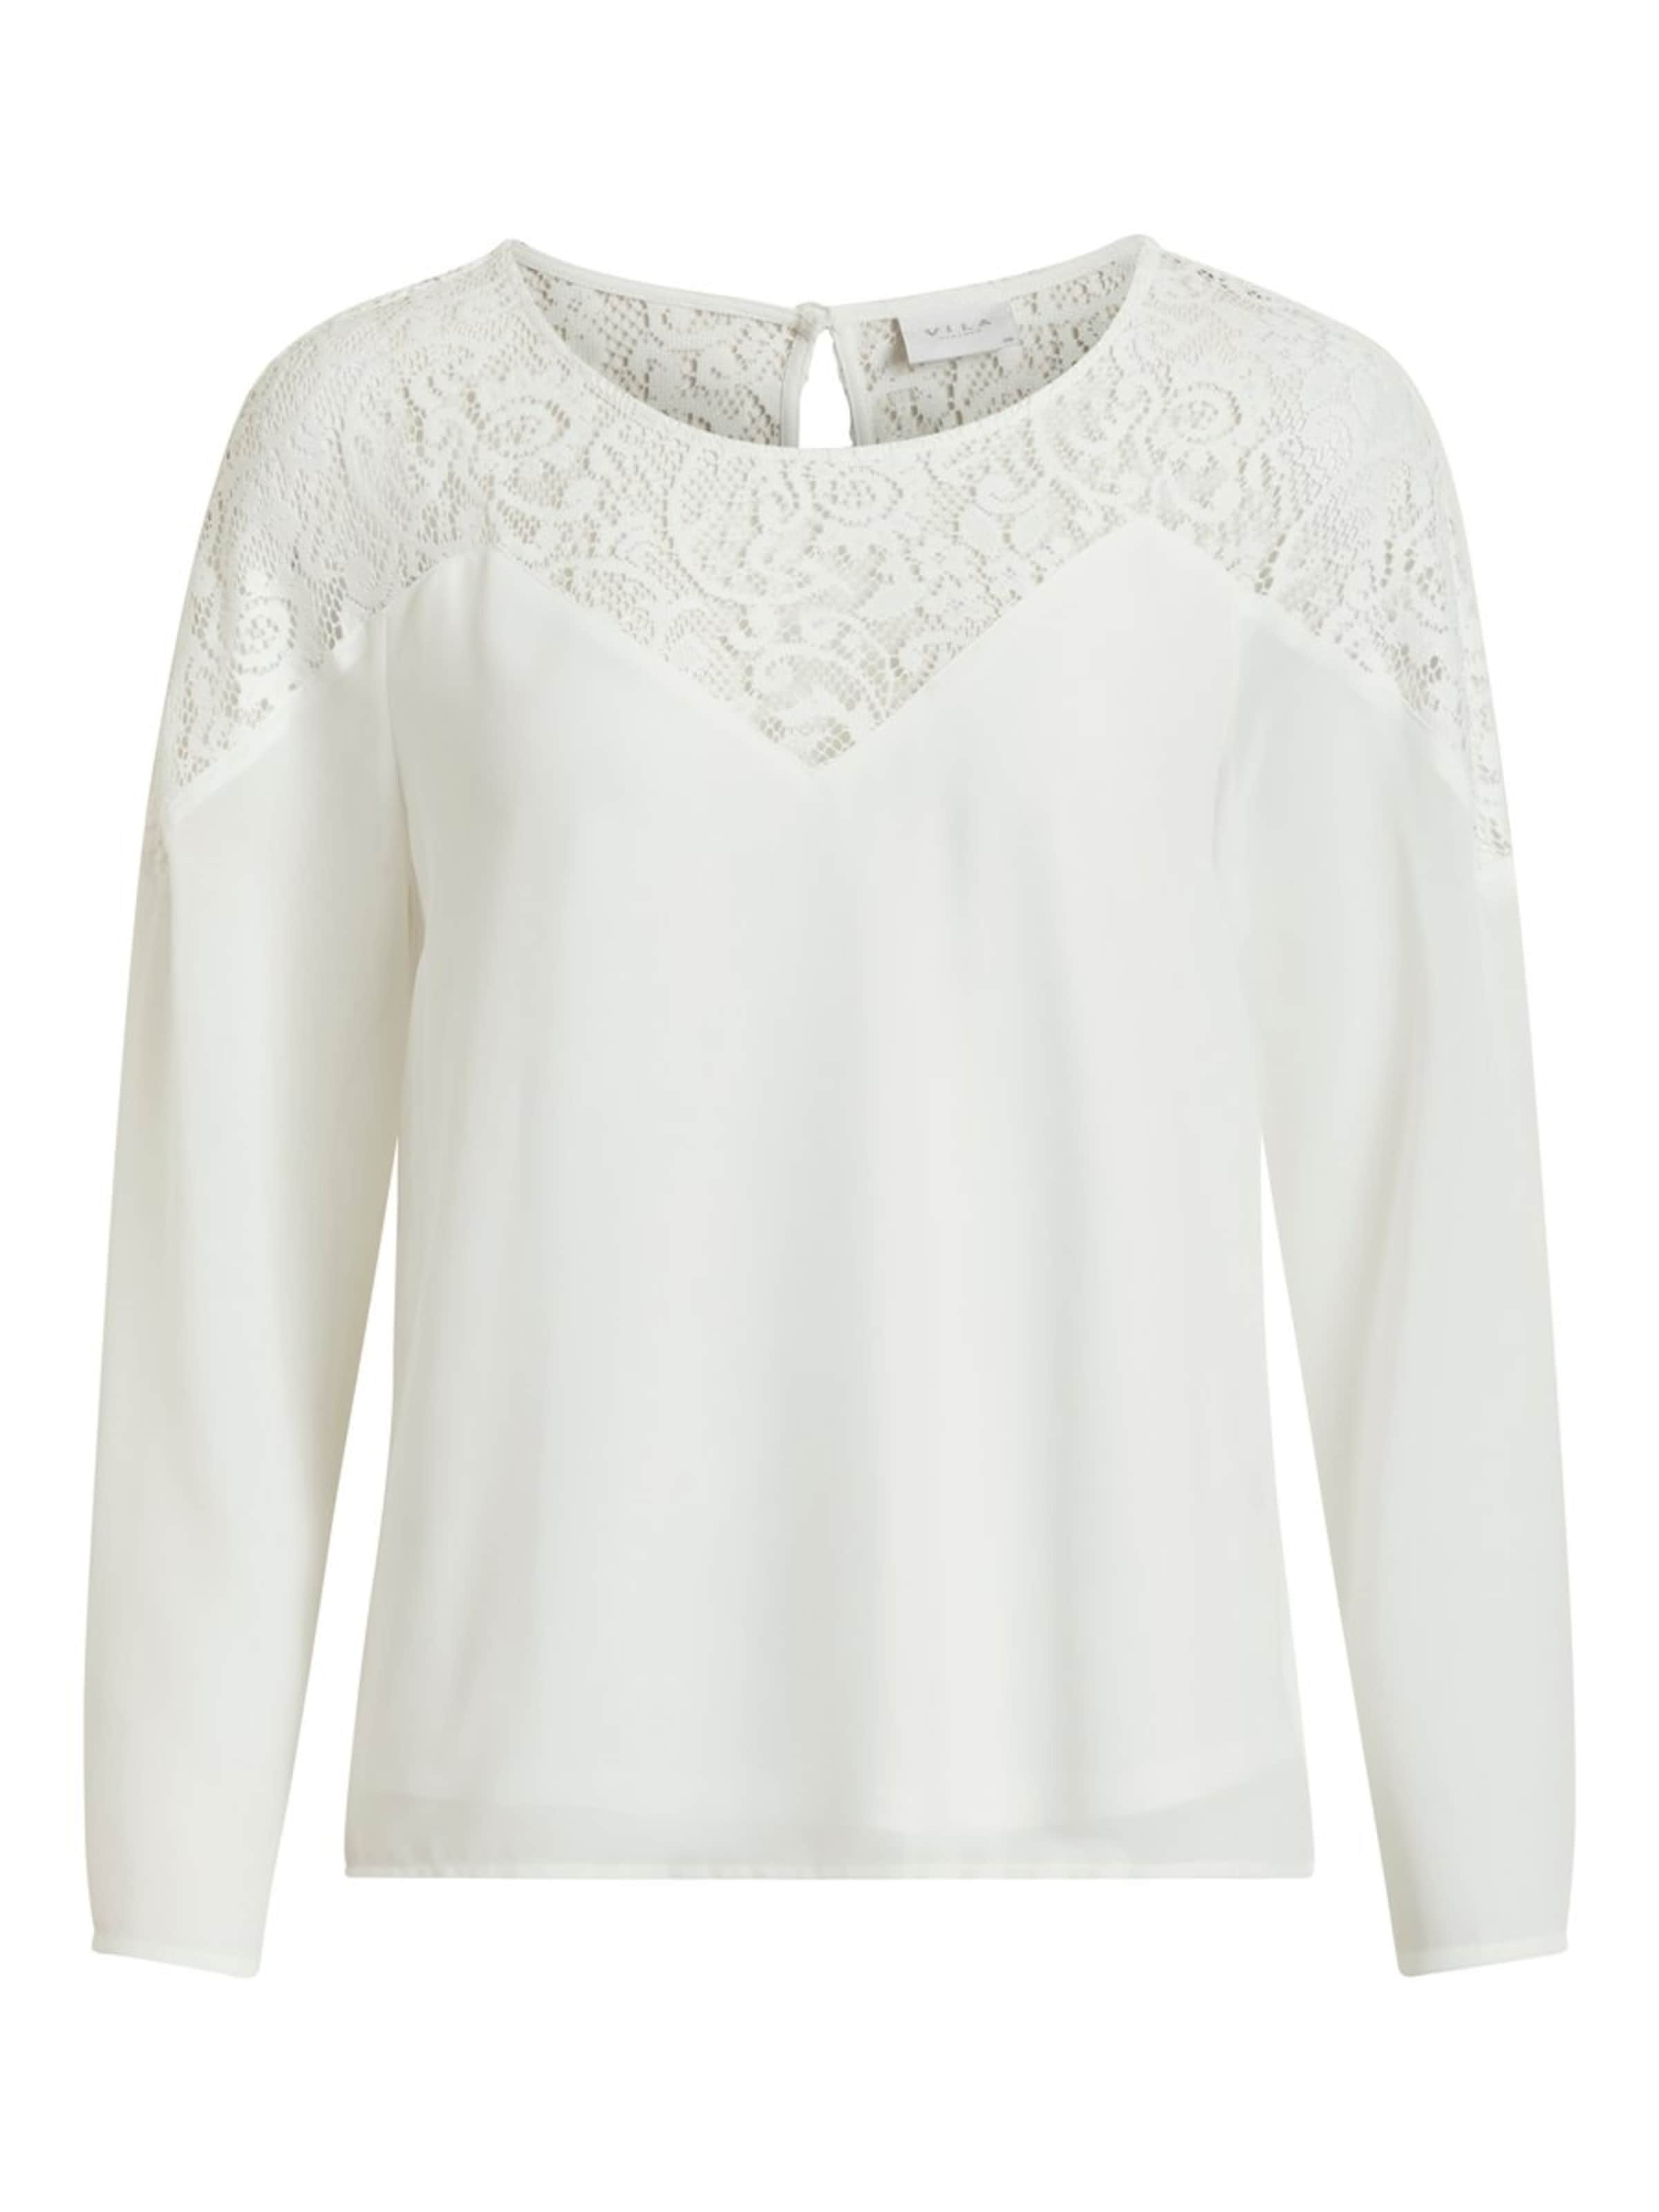 L Lace Weiß 'vibekida s Shirt In Top' Vila Tc5uF3Kl1J